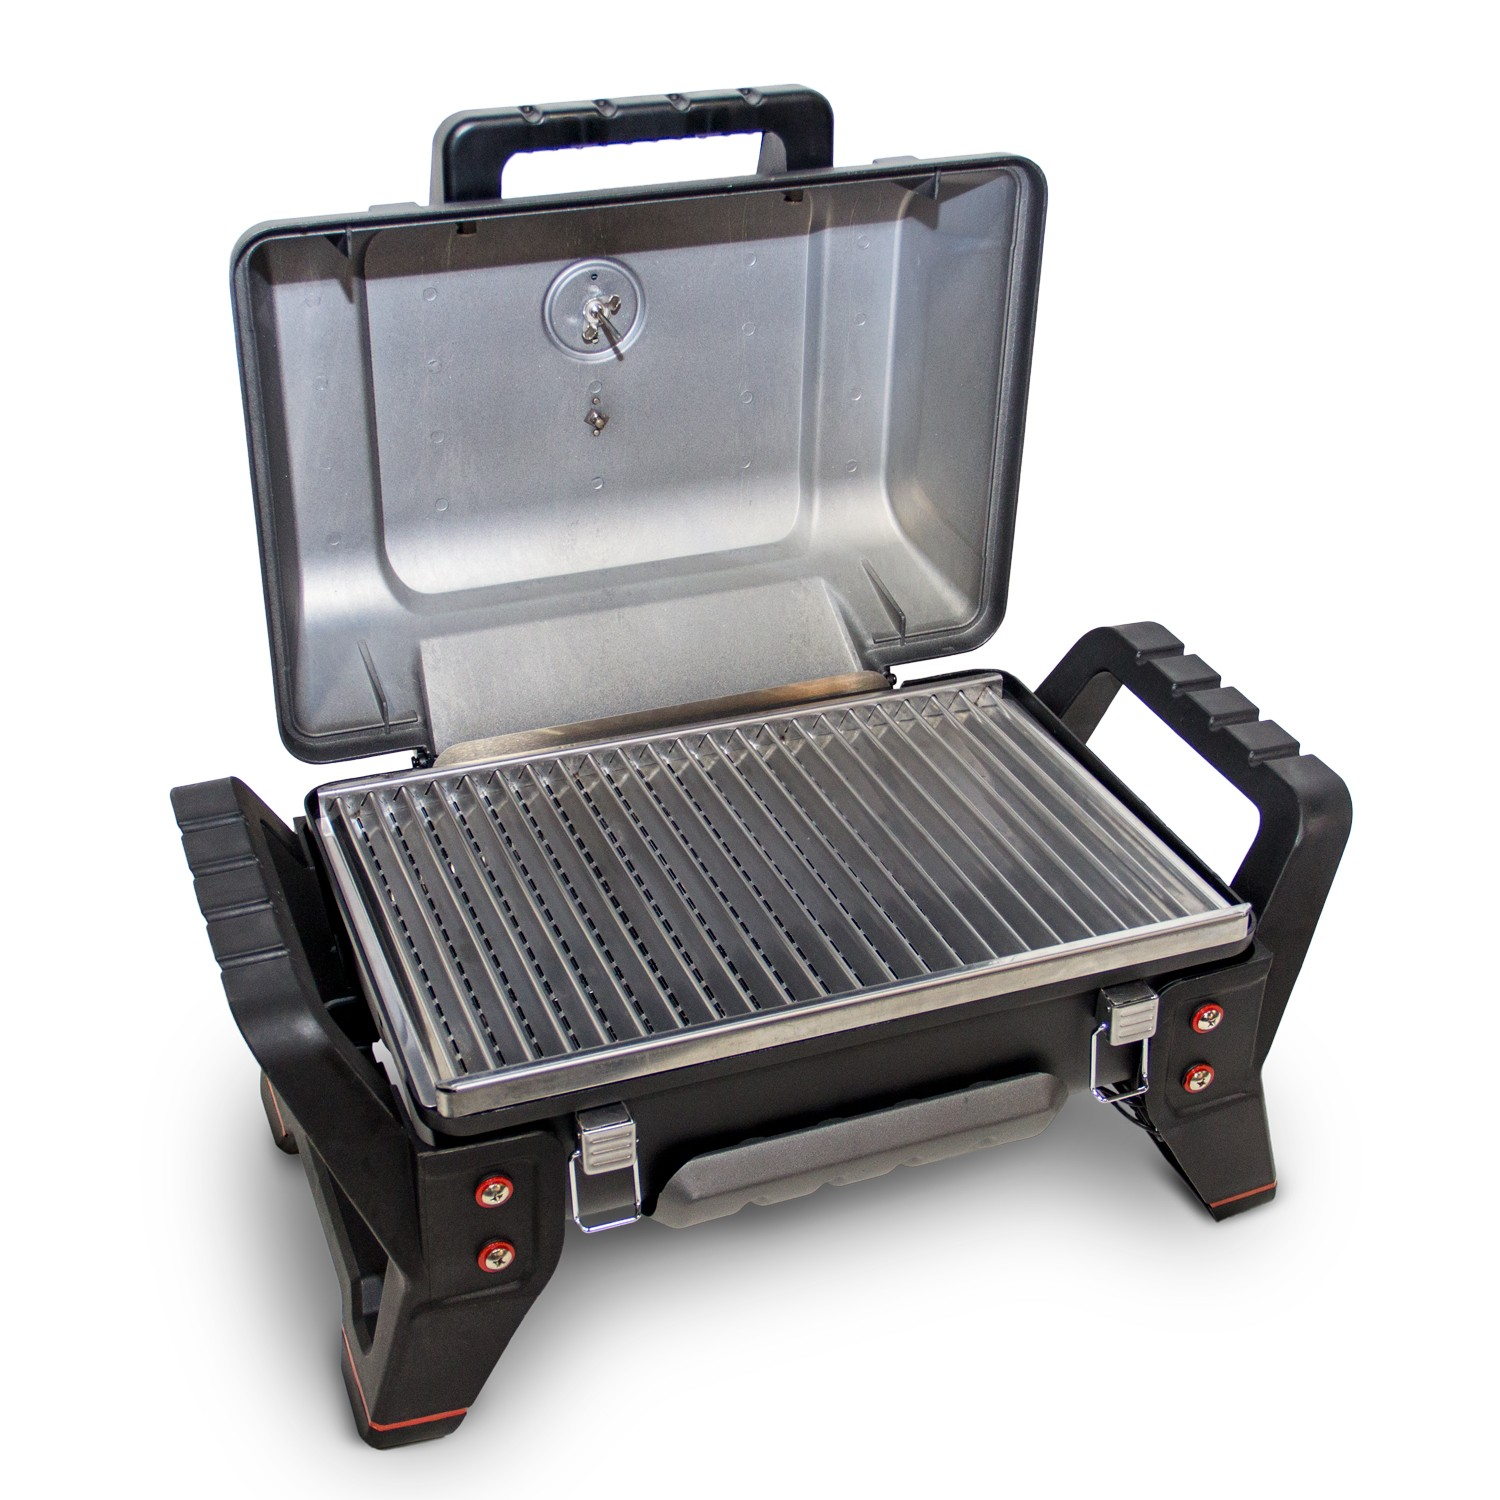 char broil x200 grill 2 go portable bbq grey leekes. Black Bedroom Furniture Sets. Home Design Ideas